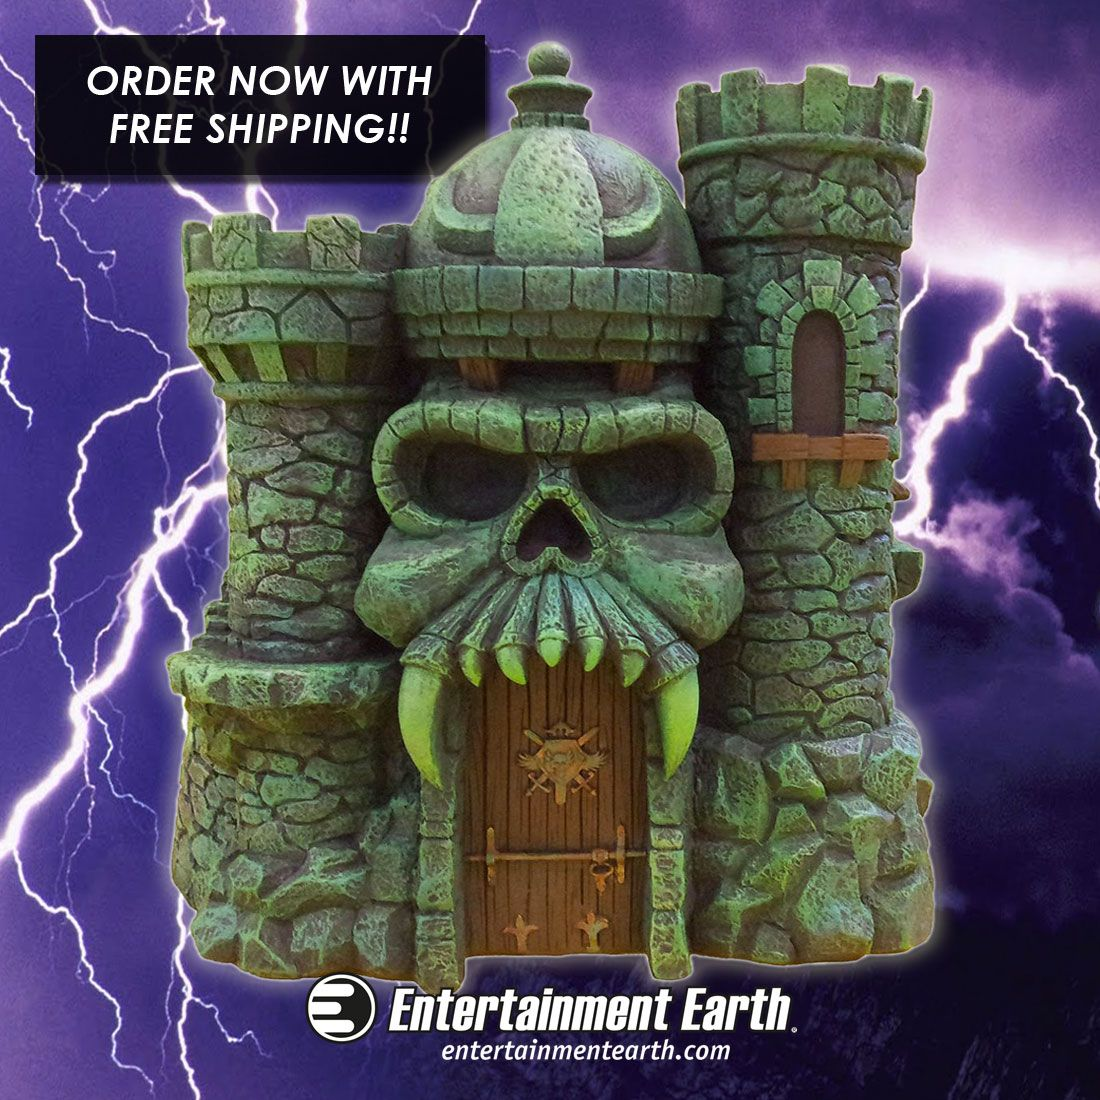 Hang out with He-Man at Castle Grayskull! Statue based on the original He-Man and the Masters of the Universe TV show. Designed to show off rarely seen parts of the Sorceress' castle! Order today with FREE Shipping!